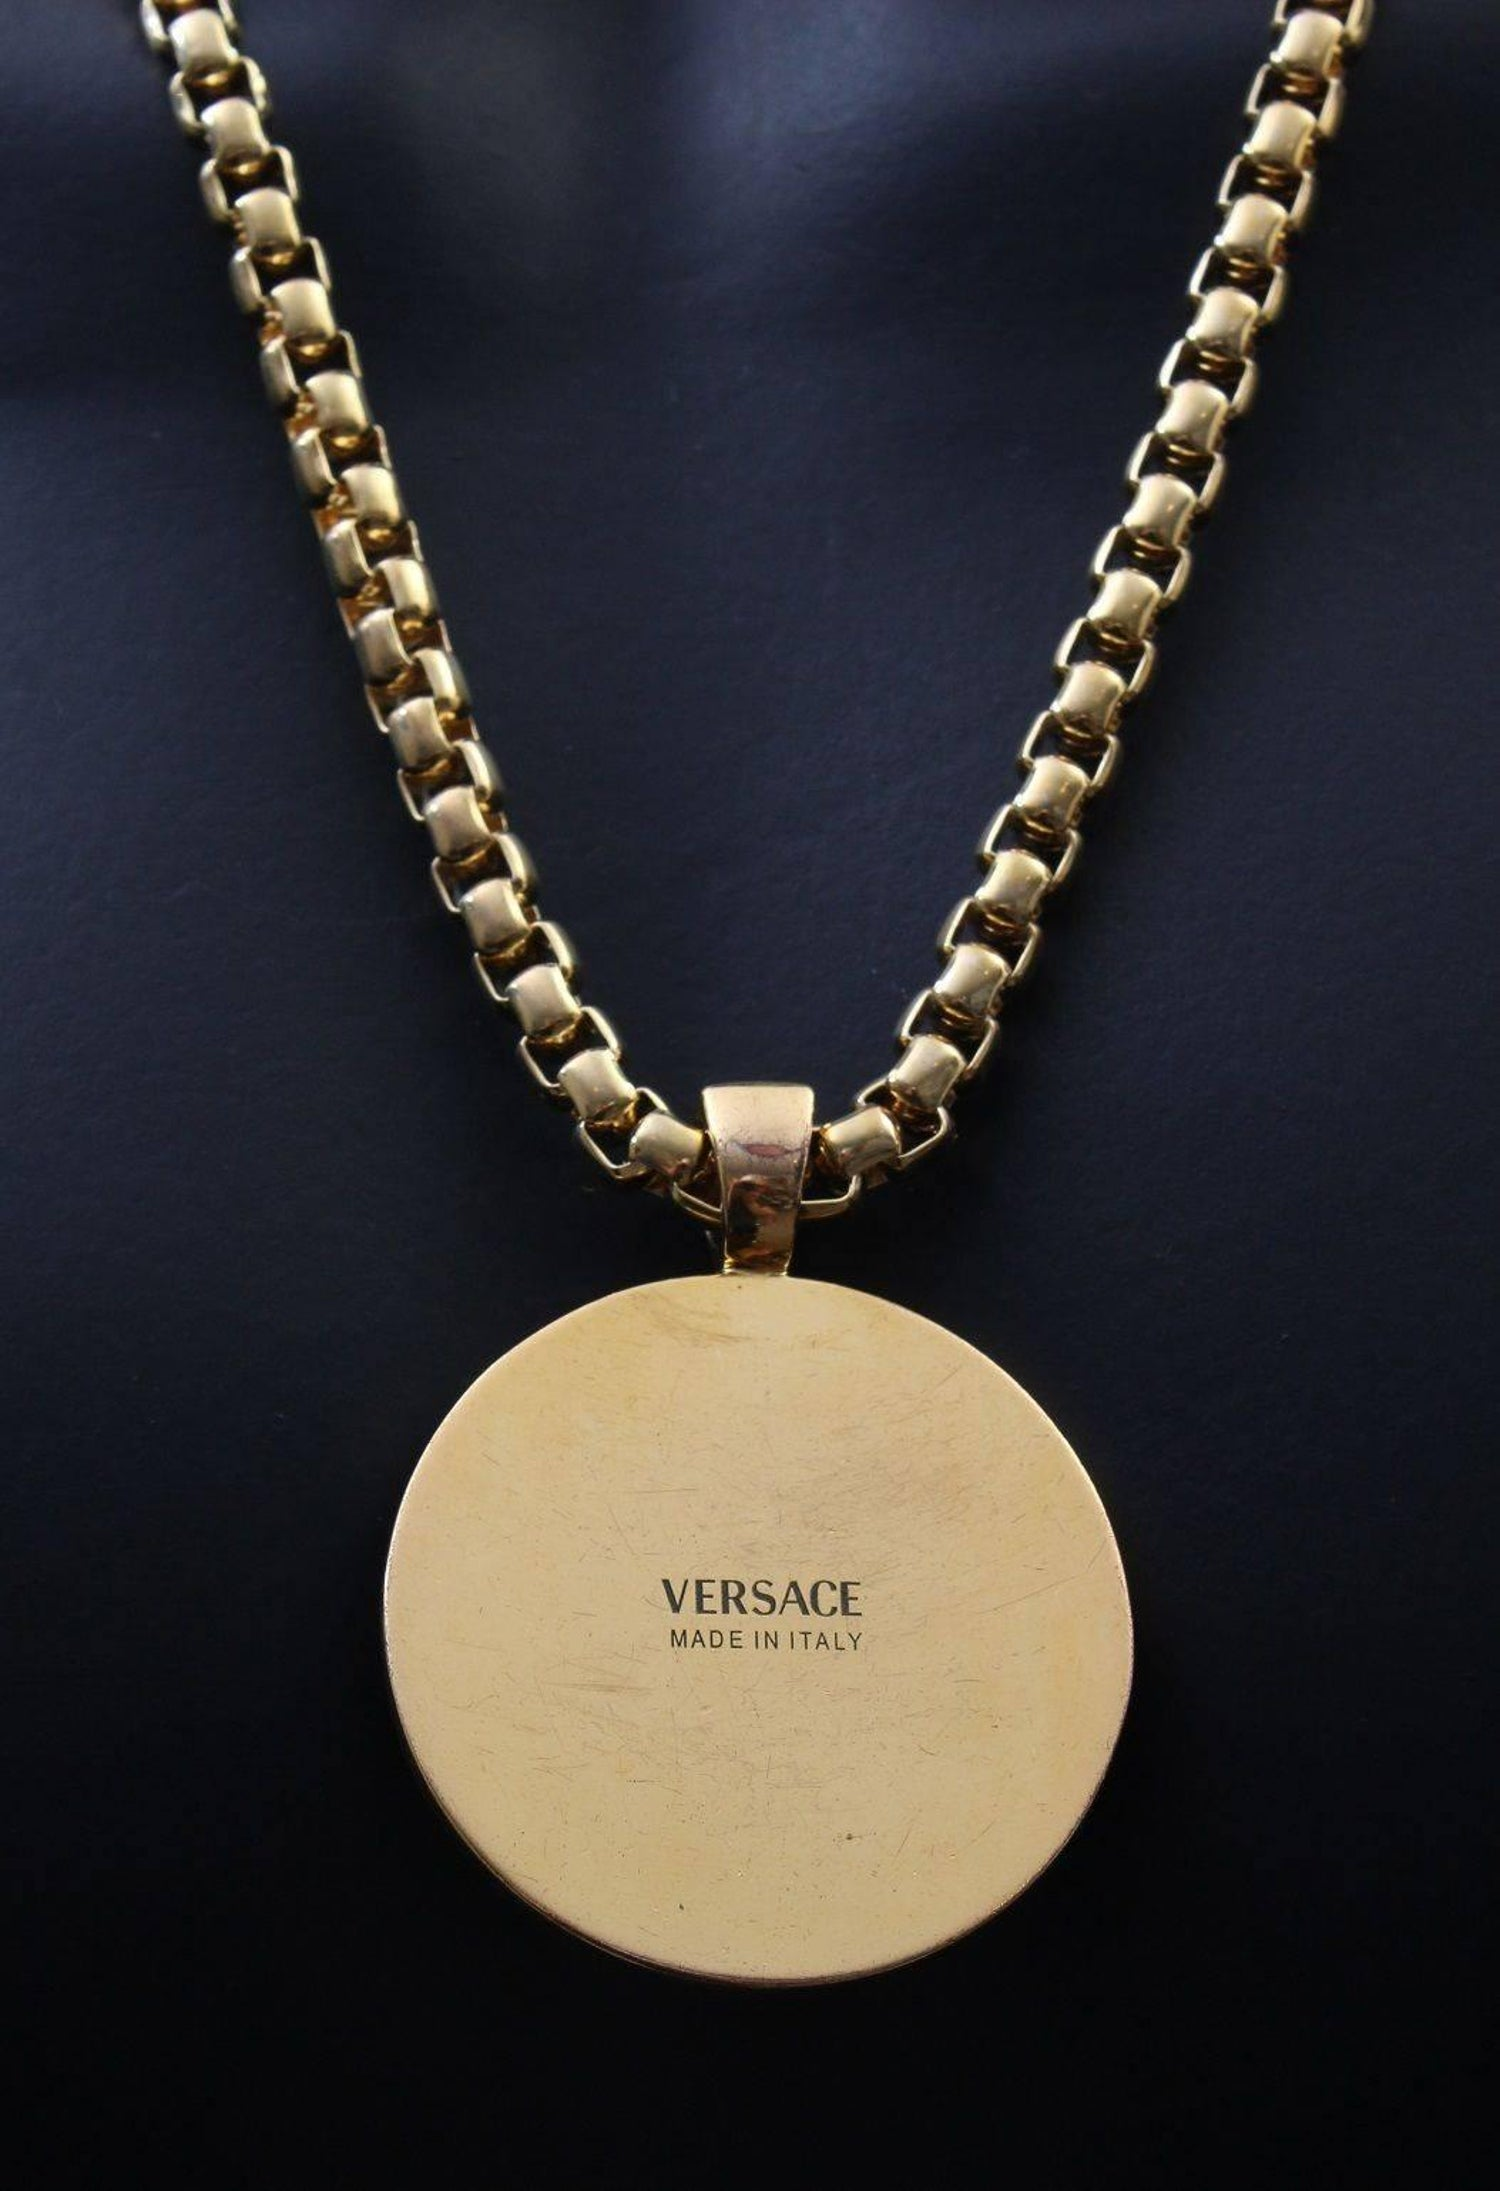 3a1c6c26f0 Versace Gold Medusa Medallion Chain Necklace as worn by Bruno Mars at  1stdibs